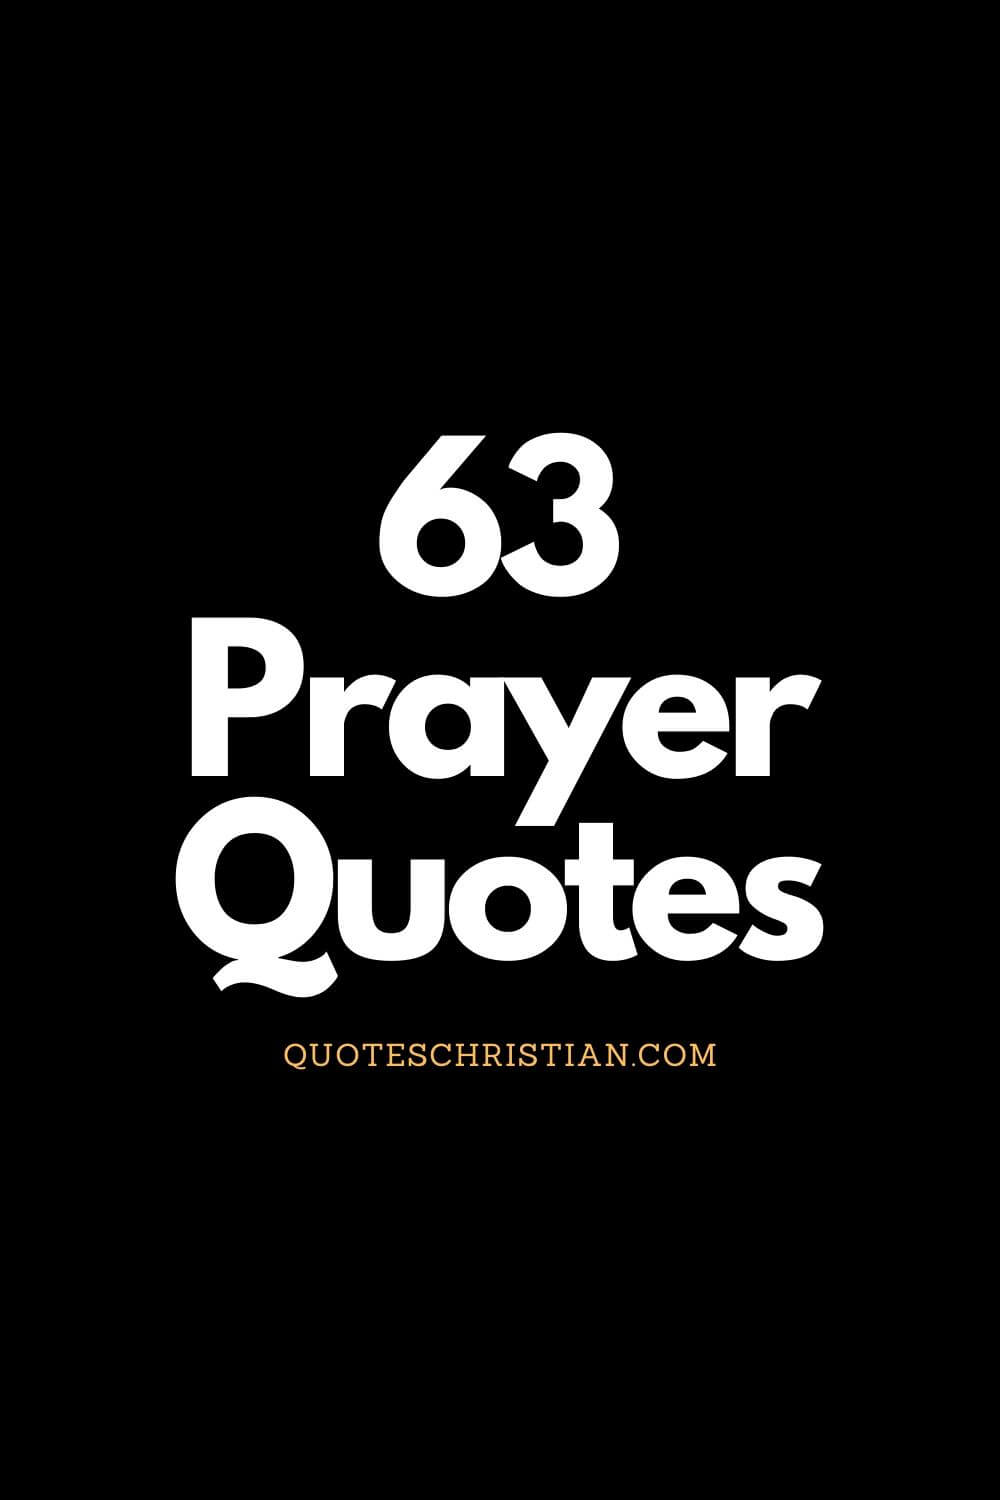 Power of Prayer Quotes: The following prayer quotes will help inspire and encourage your prayer life as you seek a stronger faith.